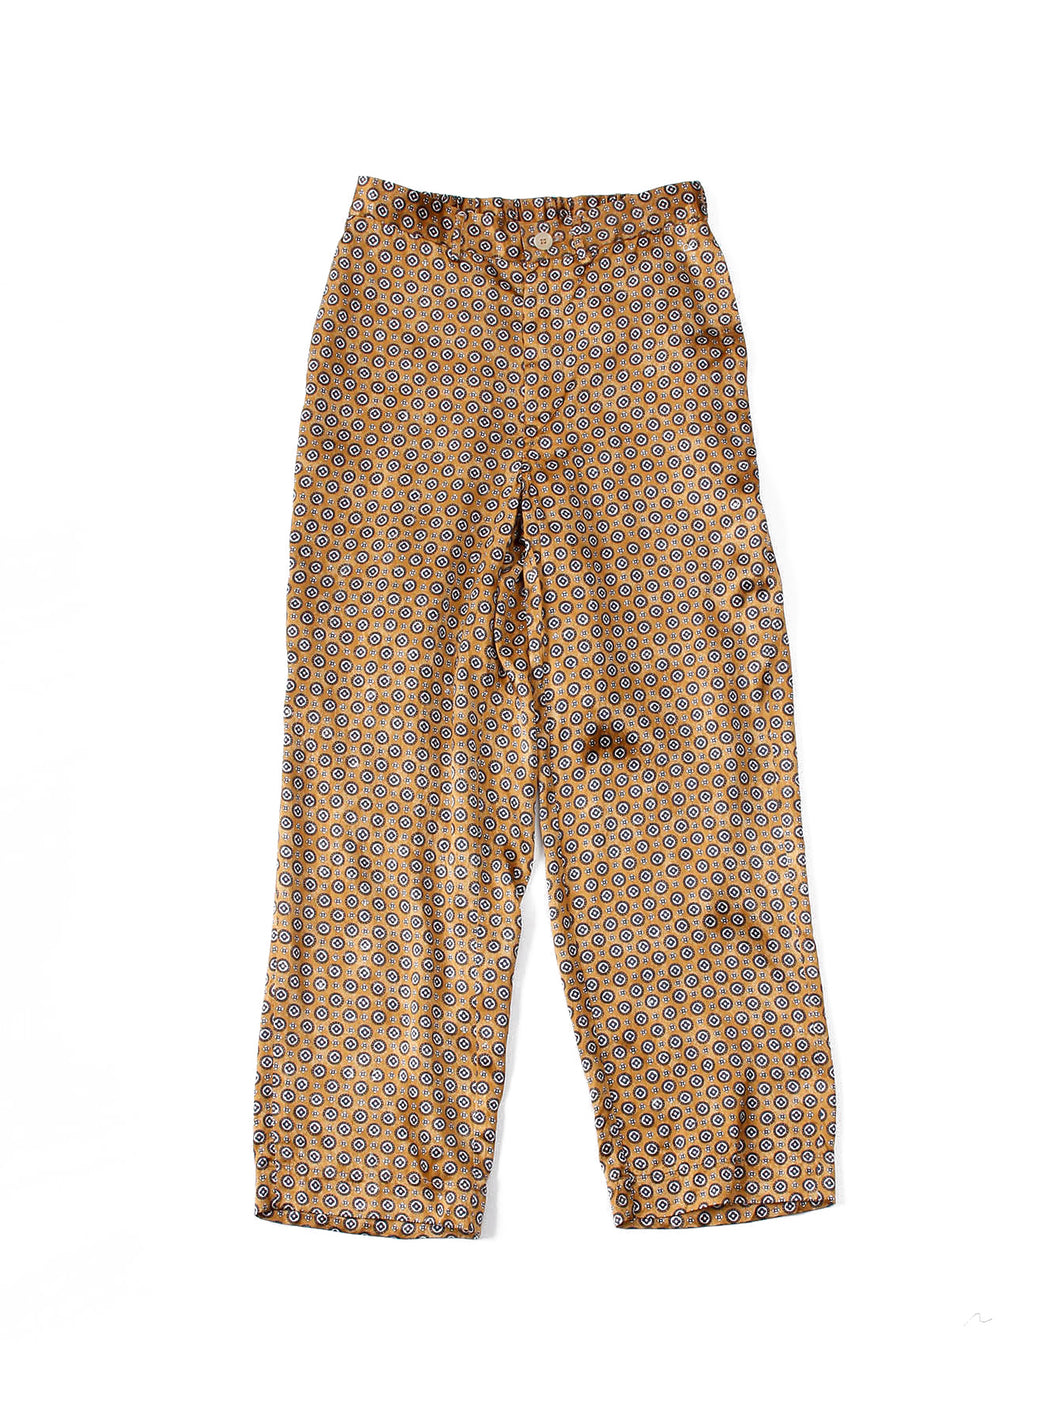 Rayon Satin Komon Print Easy Pants in Beige